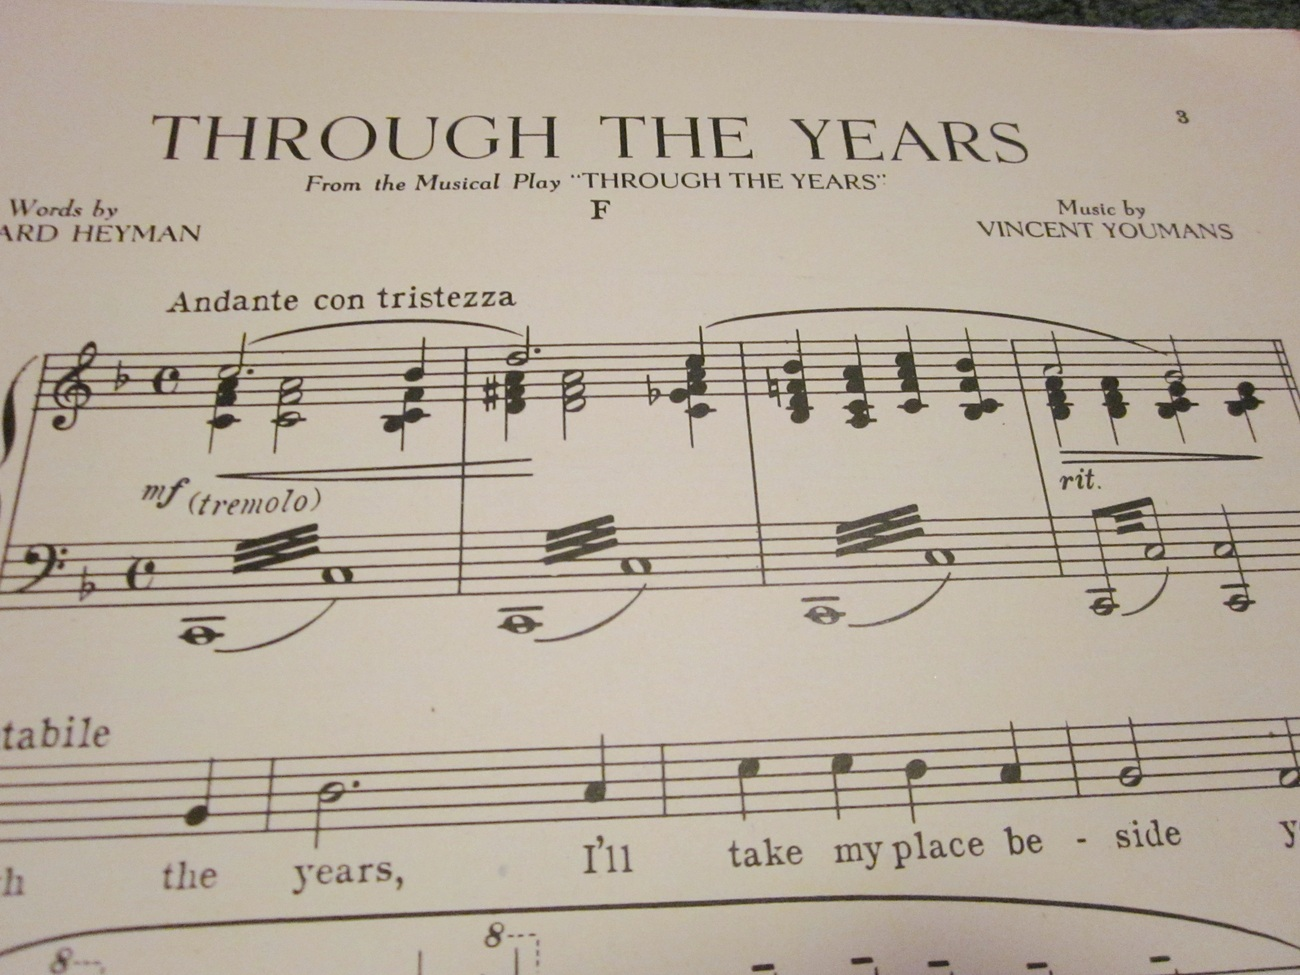 Sheet Music Through The Years by Edward Heyman and Vincent Youmans